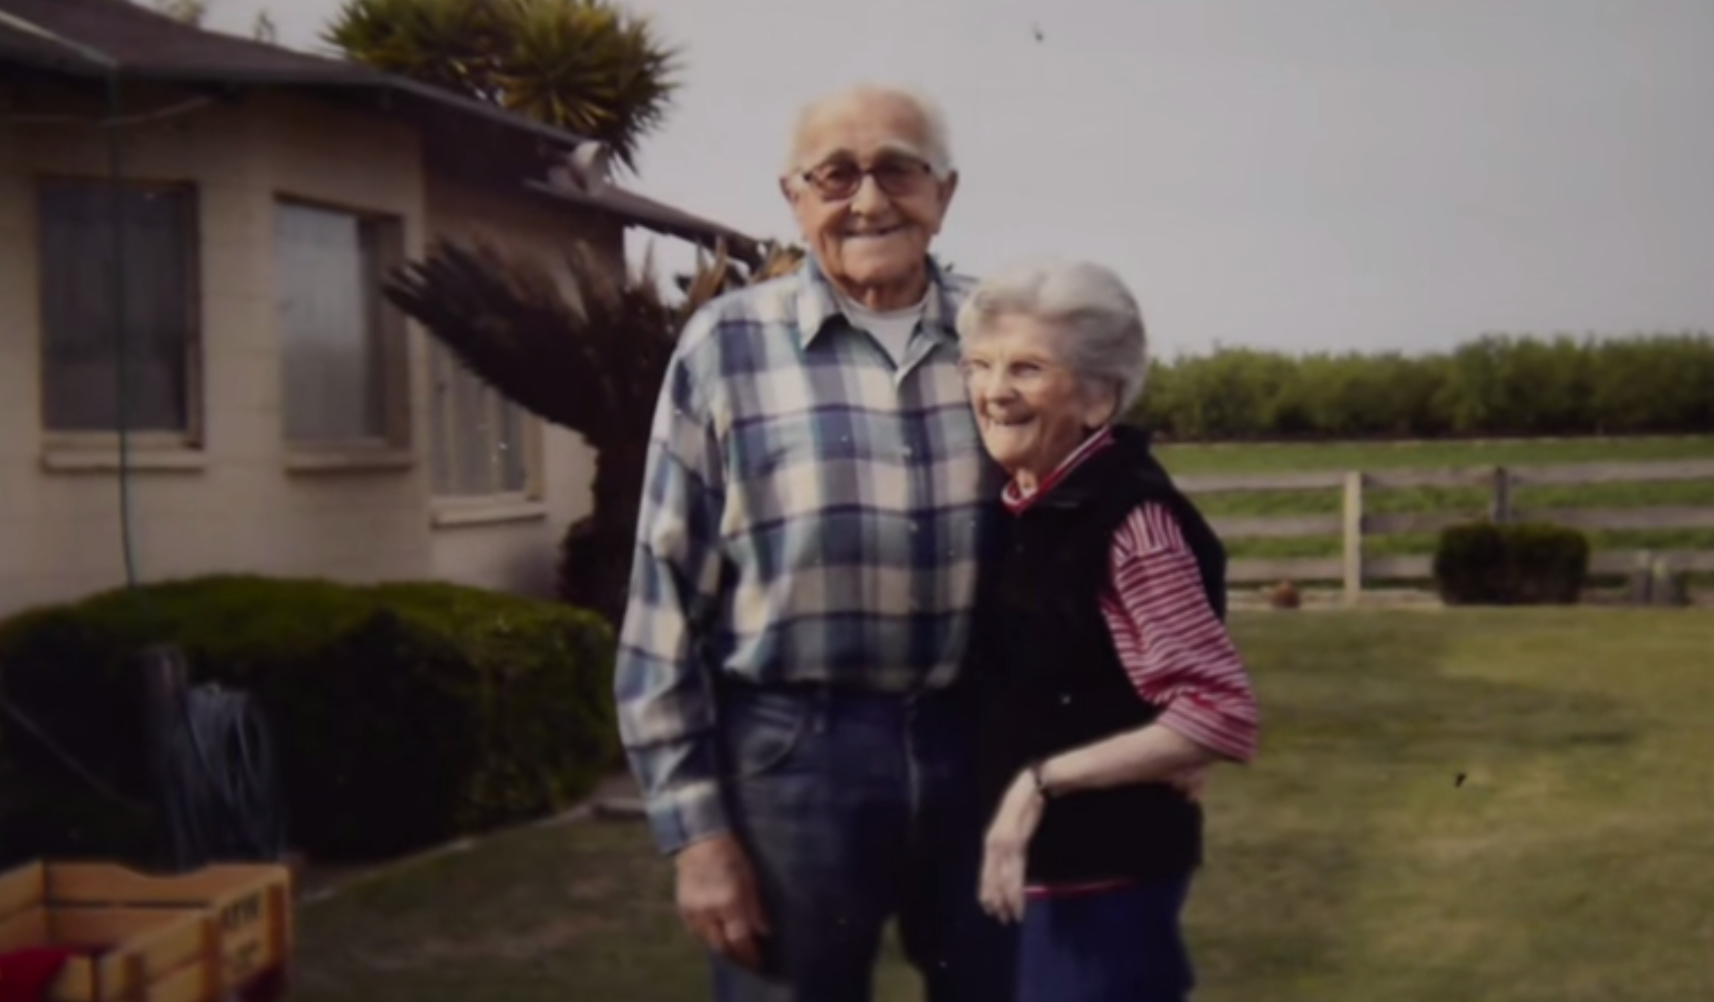 Couple married for 67 years die together holding hands